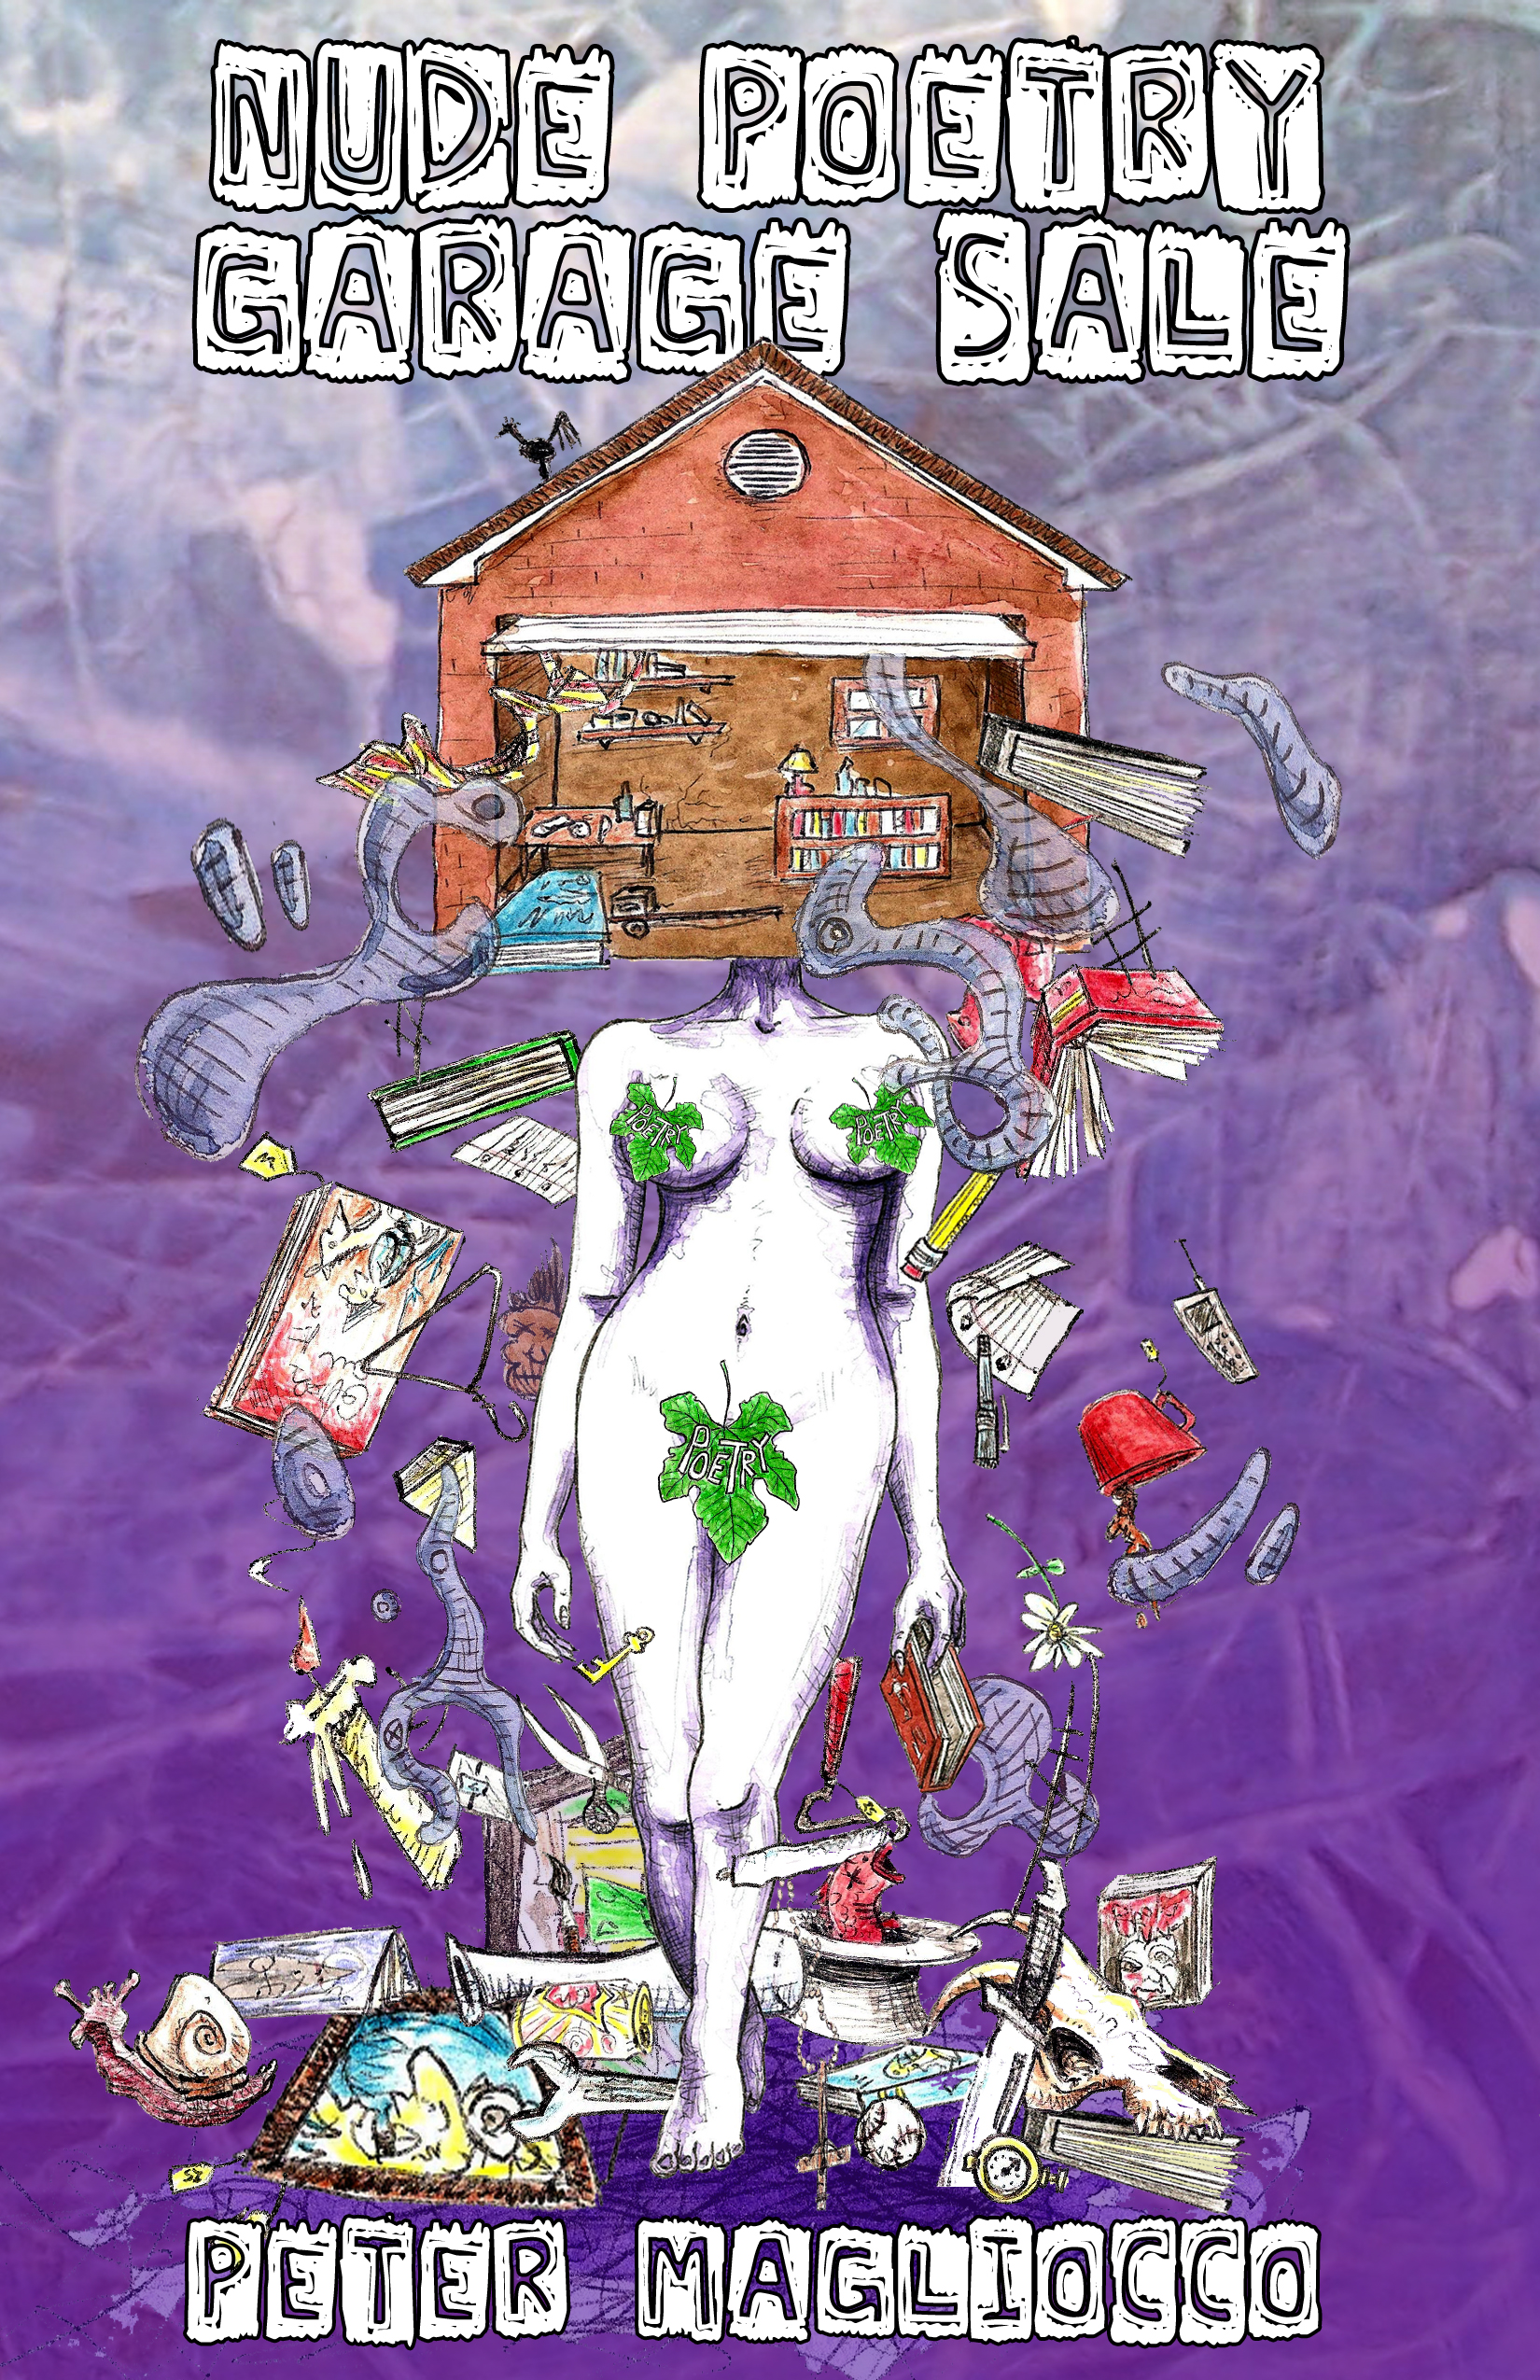 """this just in: """"nude poetry garage sale""""peter magliocco, plus"""